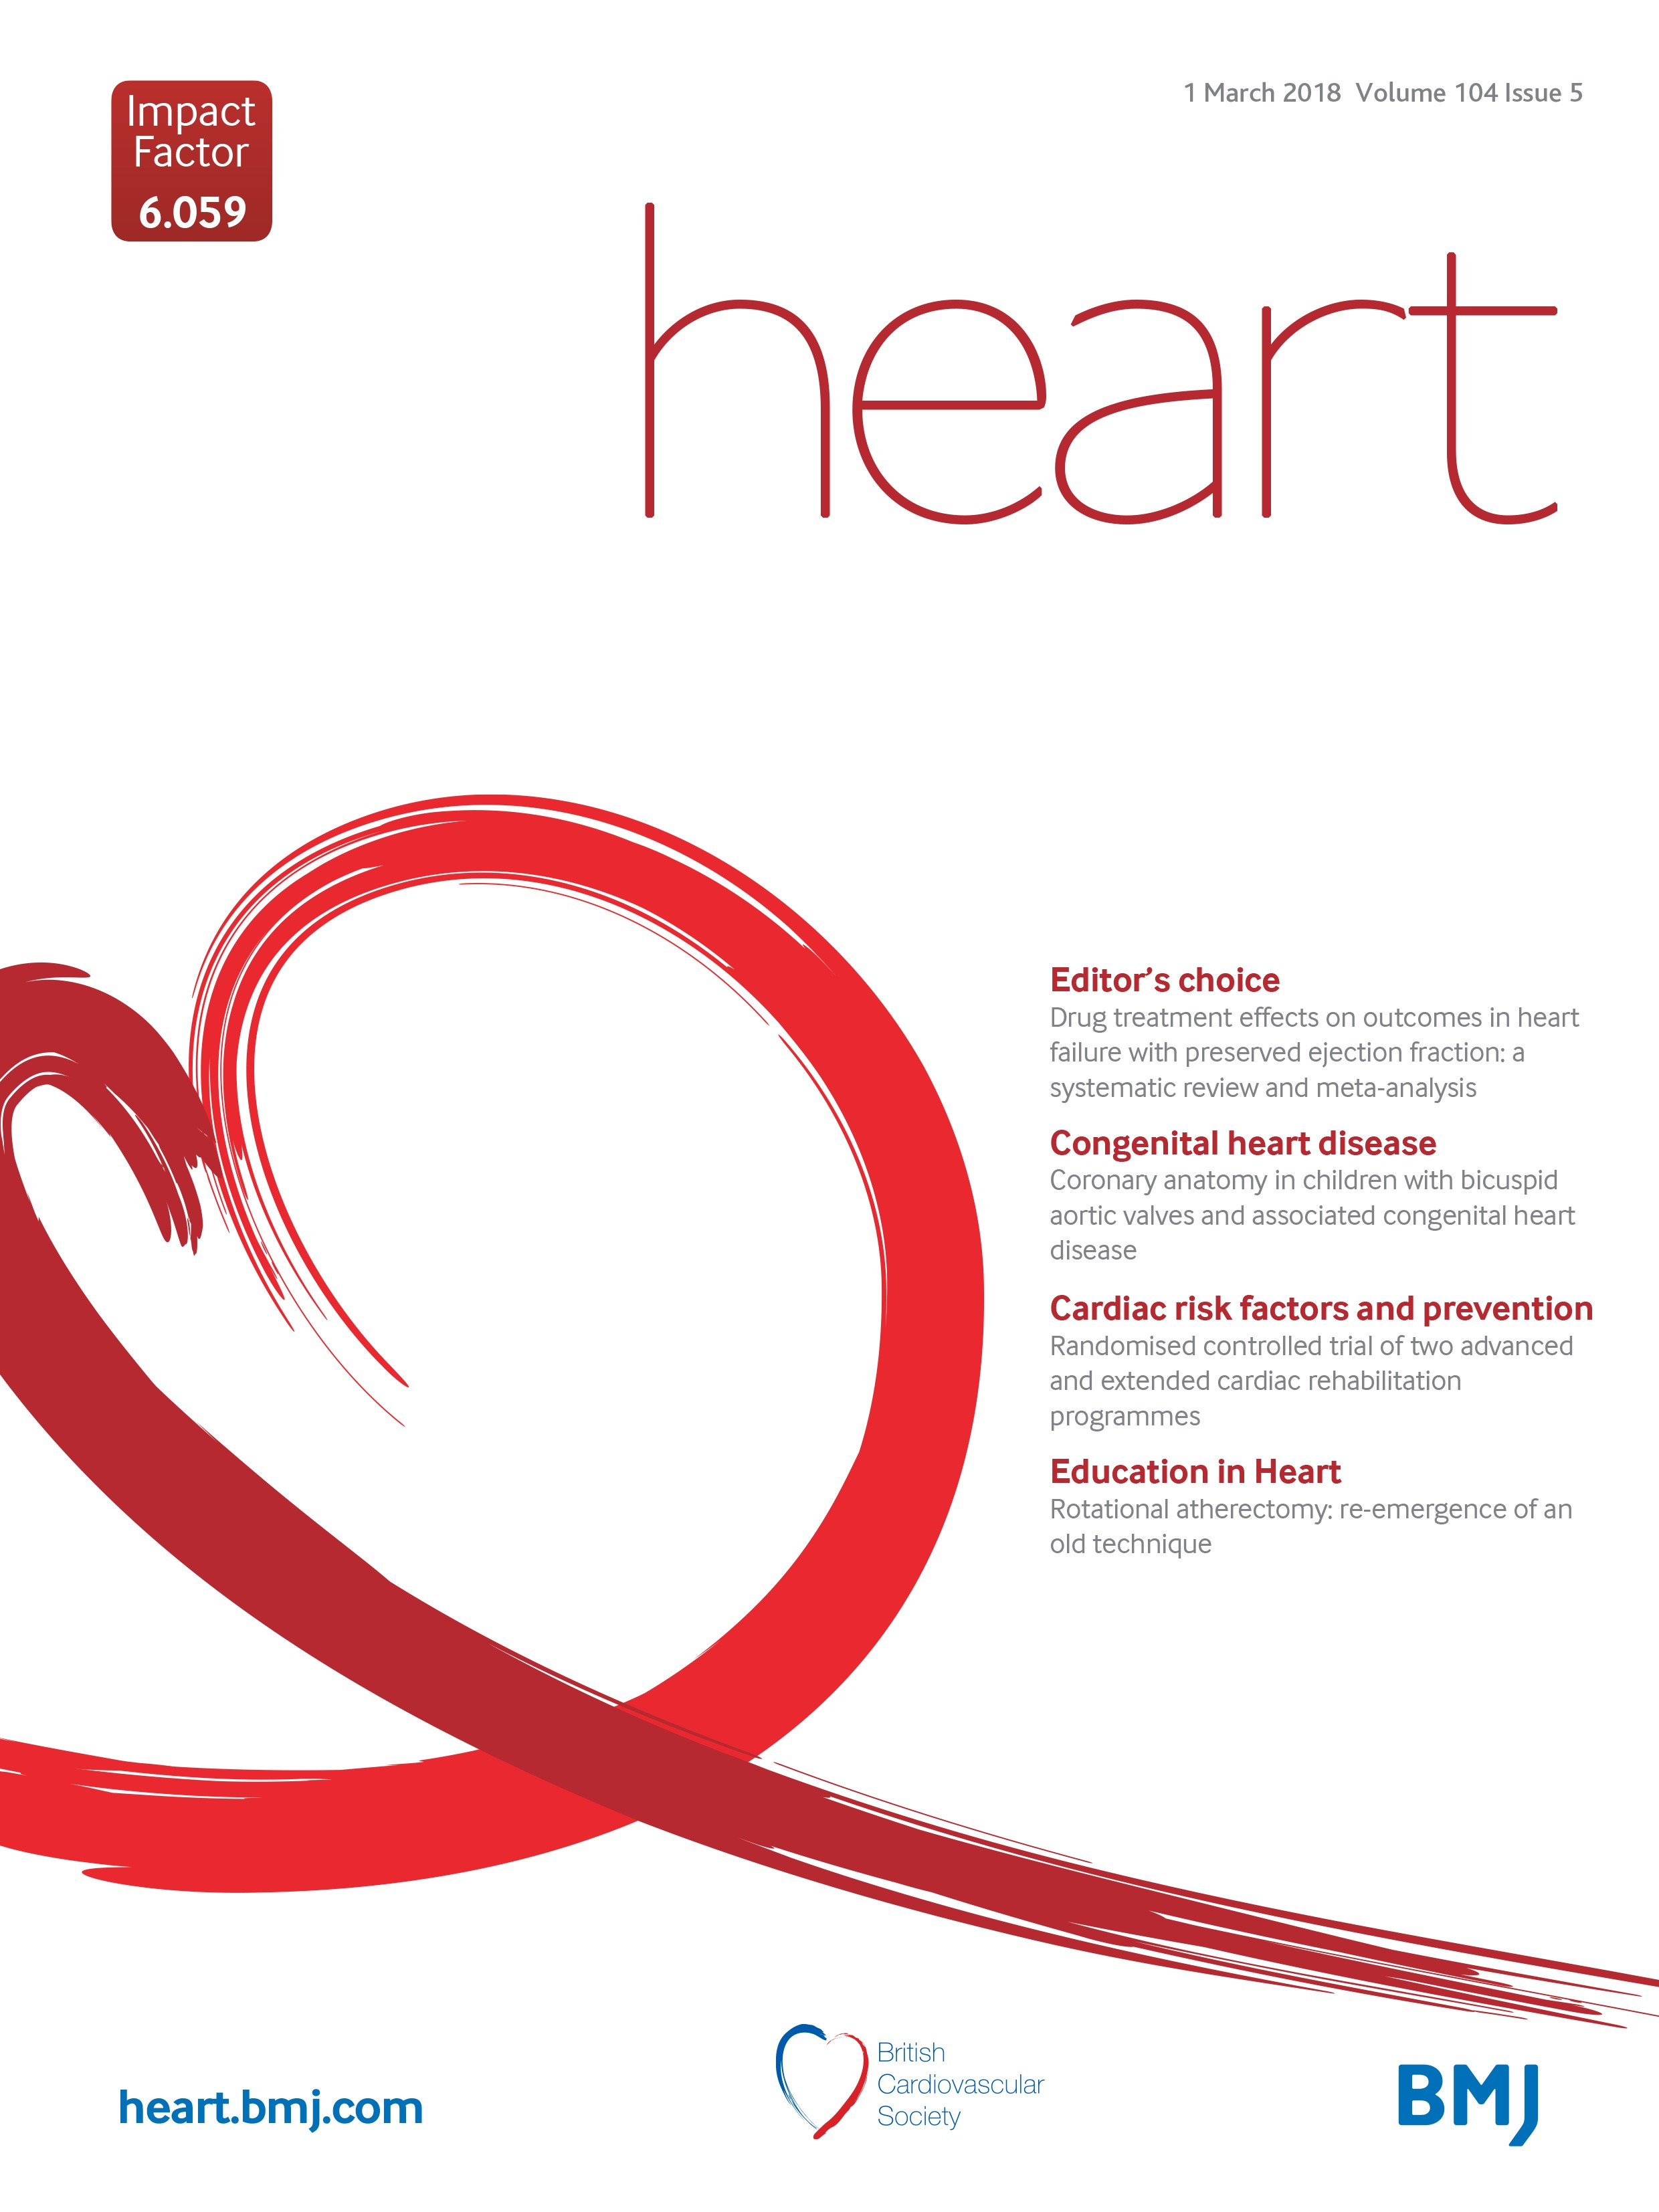 Coronary anatomy in children with bicuspid aortic valves and ...